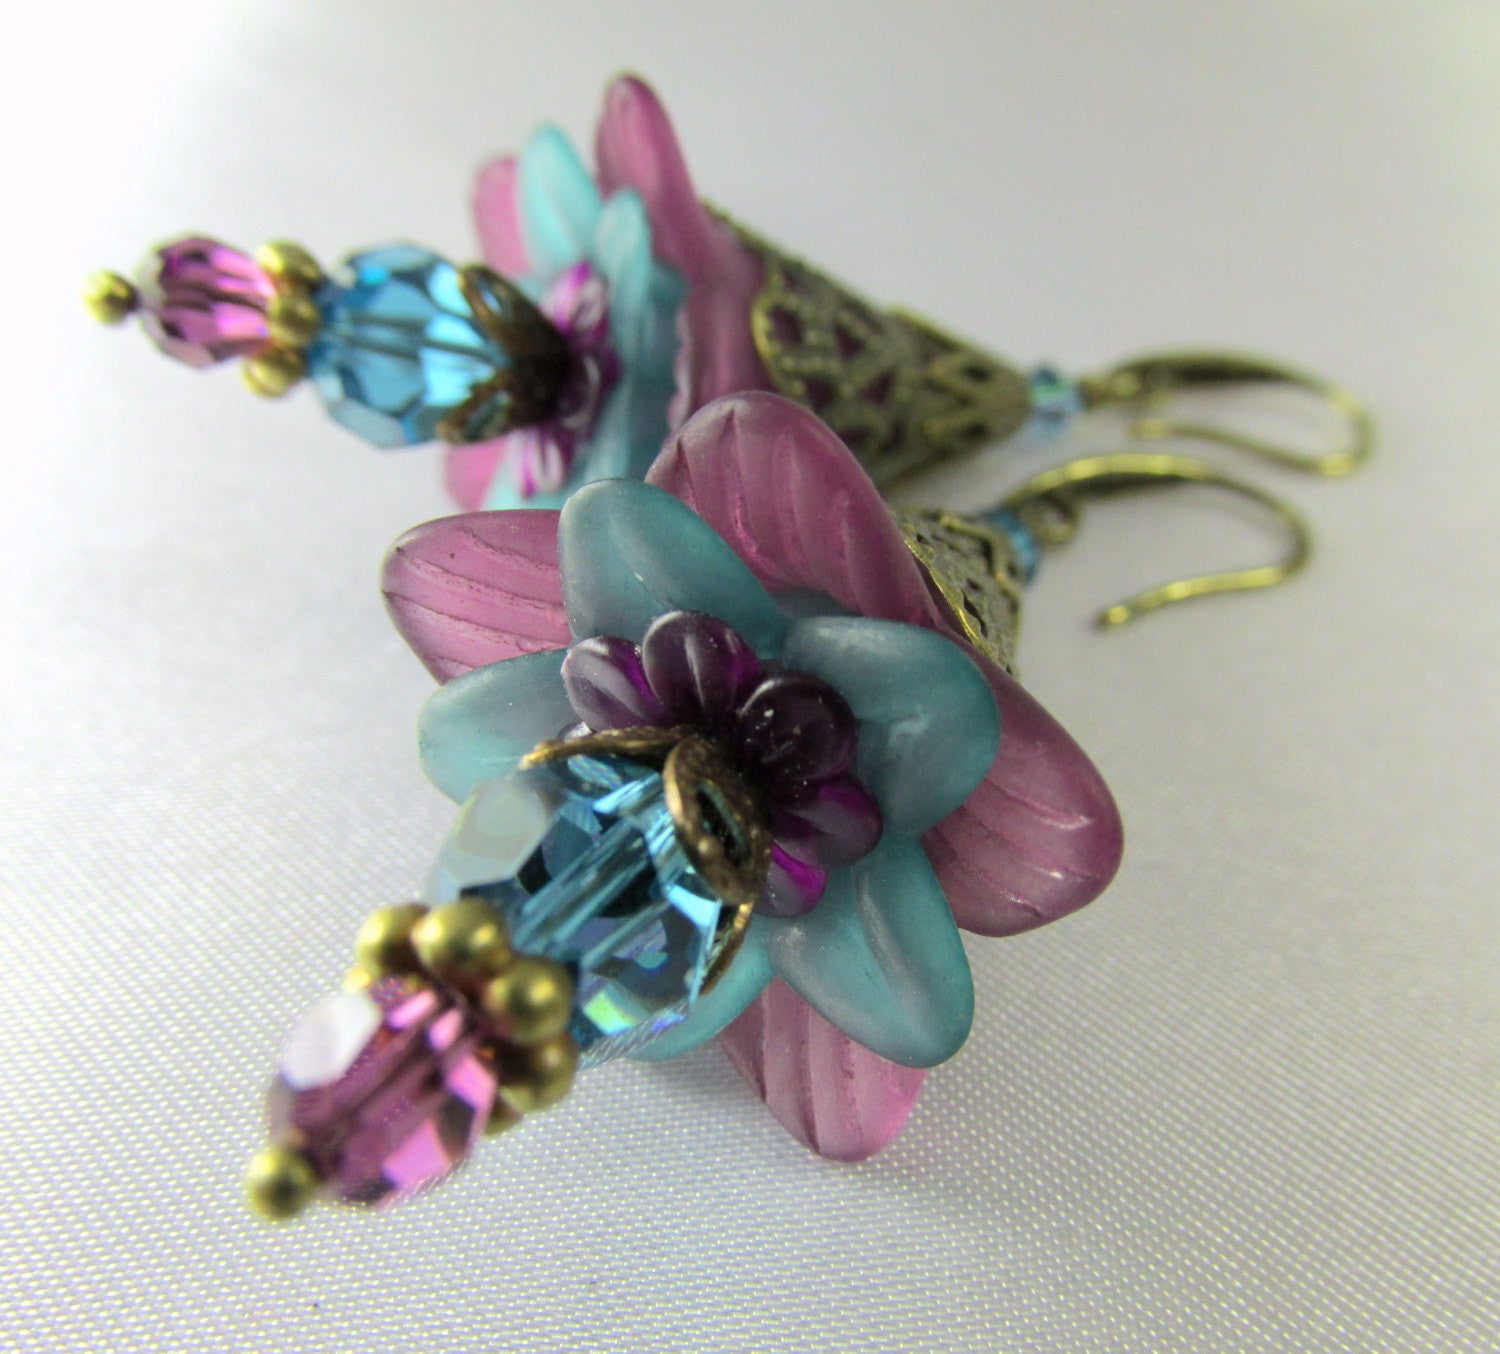 Lily Flower Earrings in Plum Purple and Turquoise Tealwith Swarovski Crystals and glass teardrops on Brass - Odyssey Creations